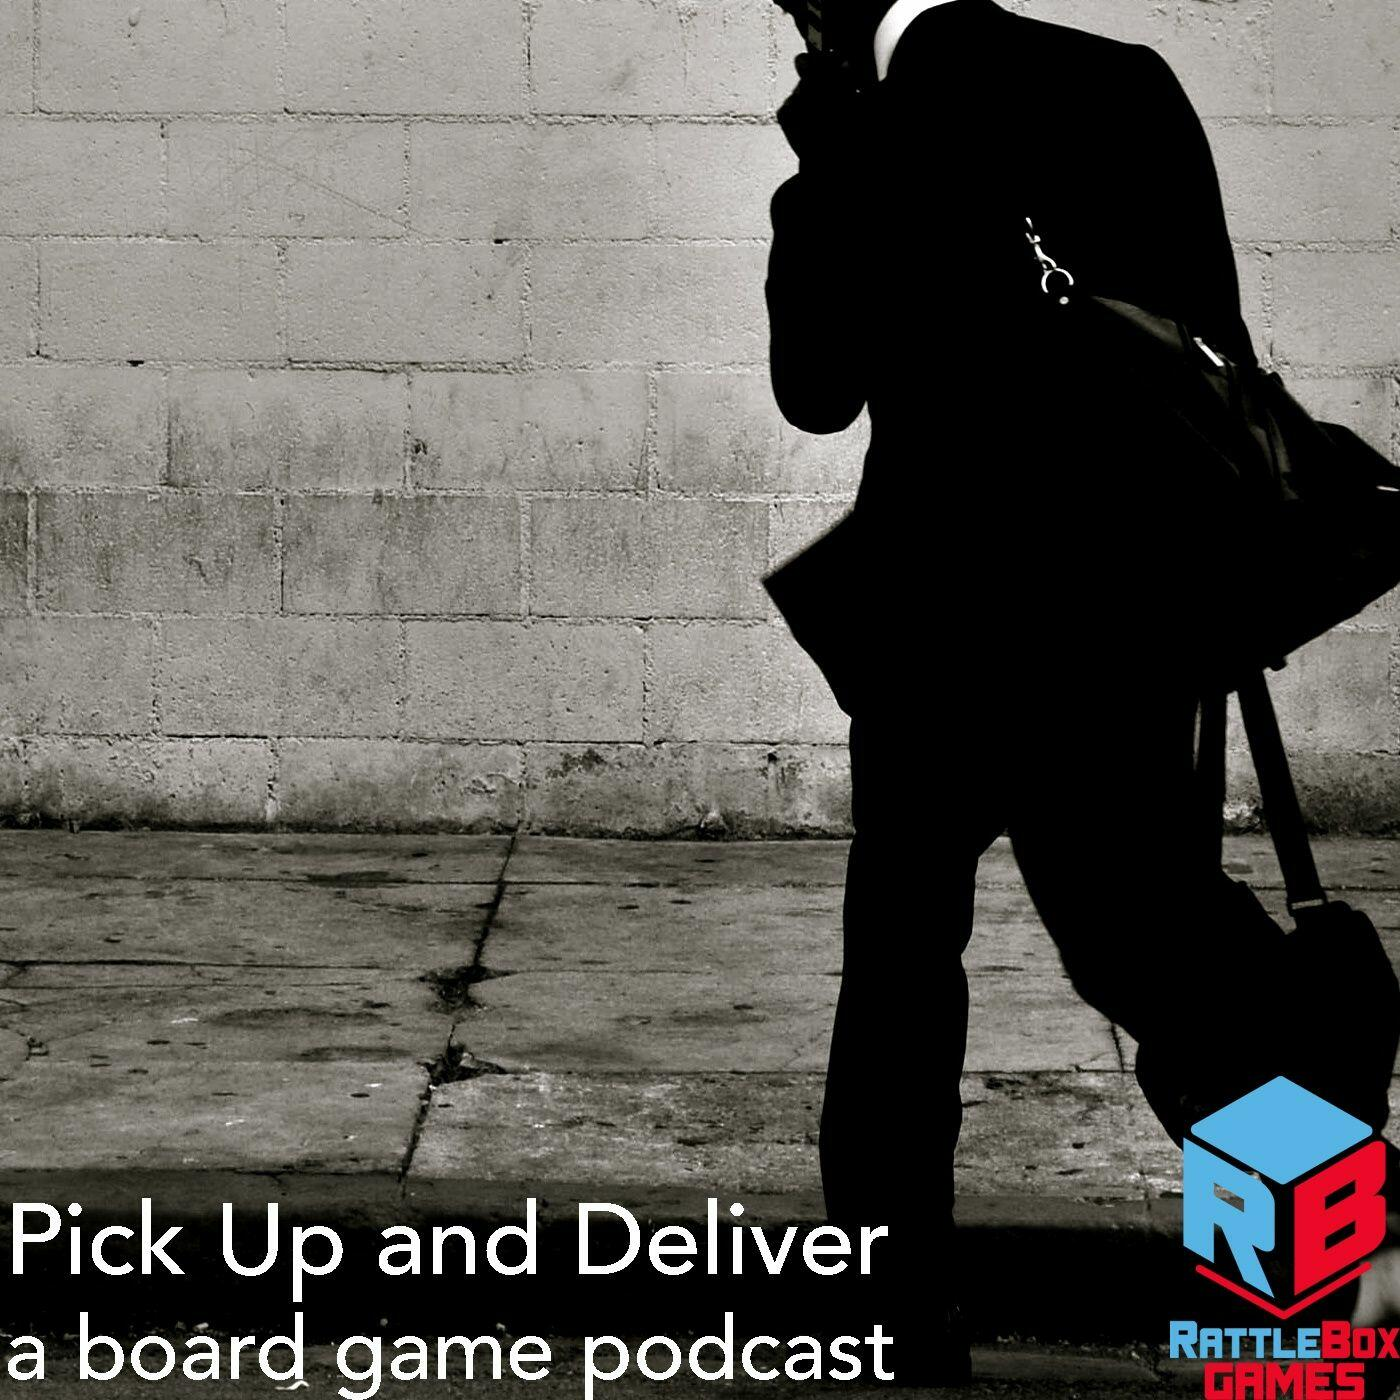 Pick Up and Deliver